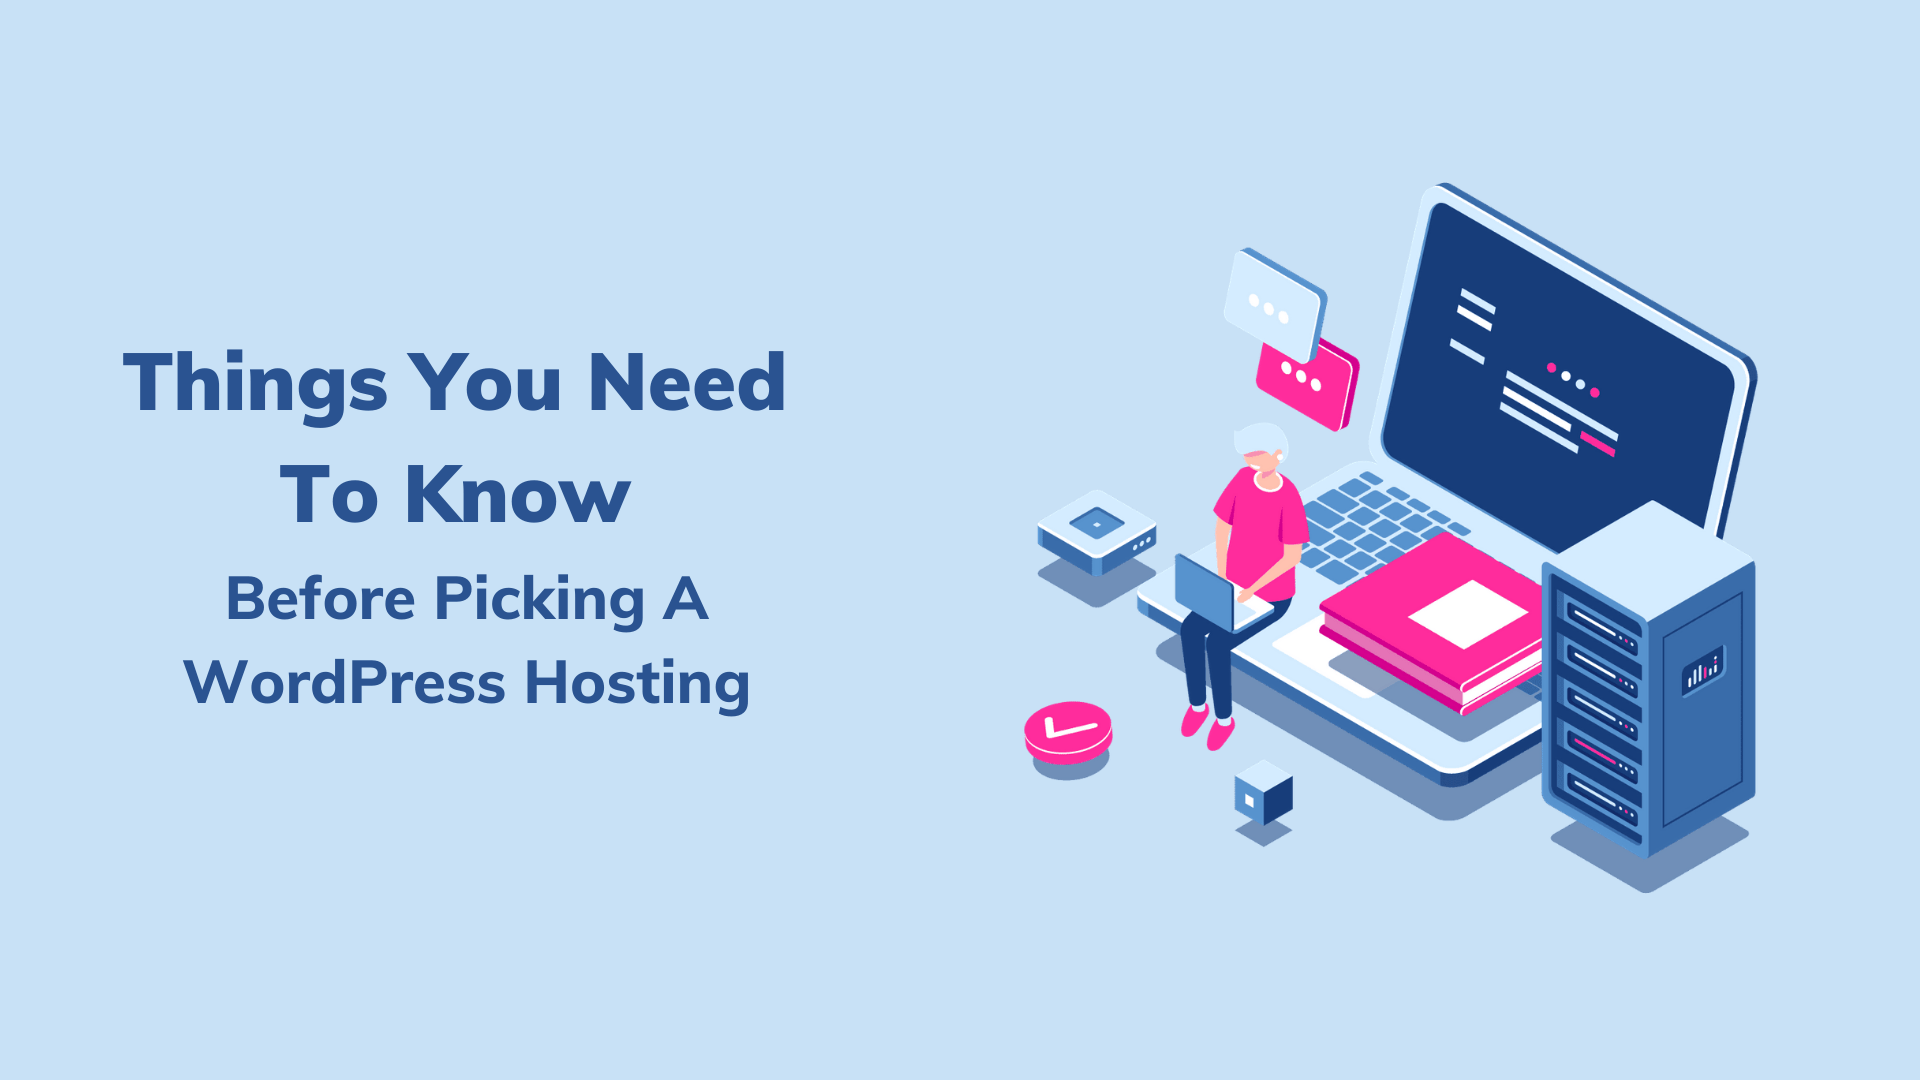 Things You Need To Know Before Picking A WordPress Hosting Plan